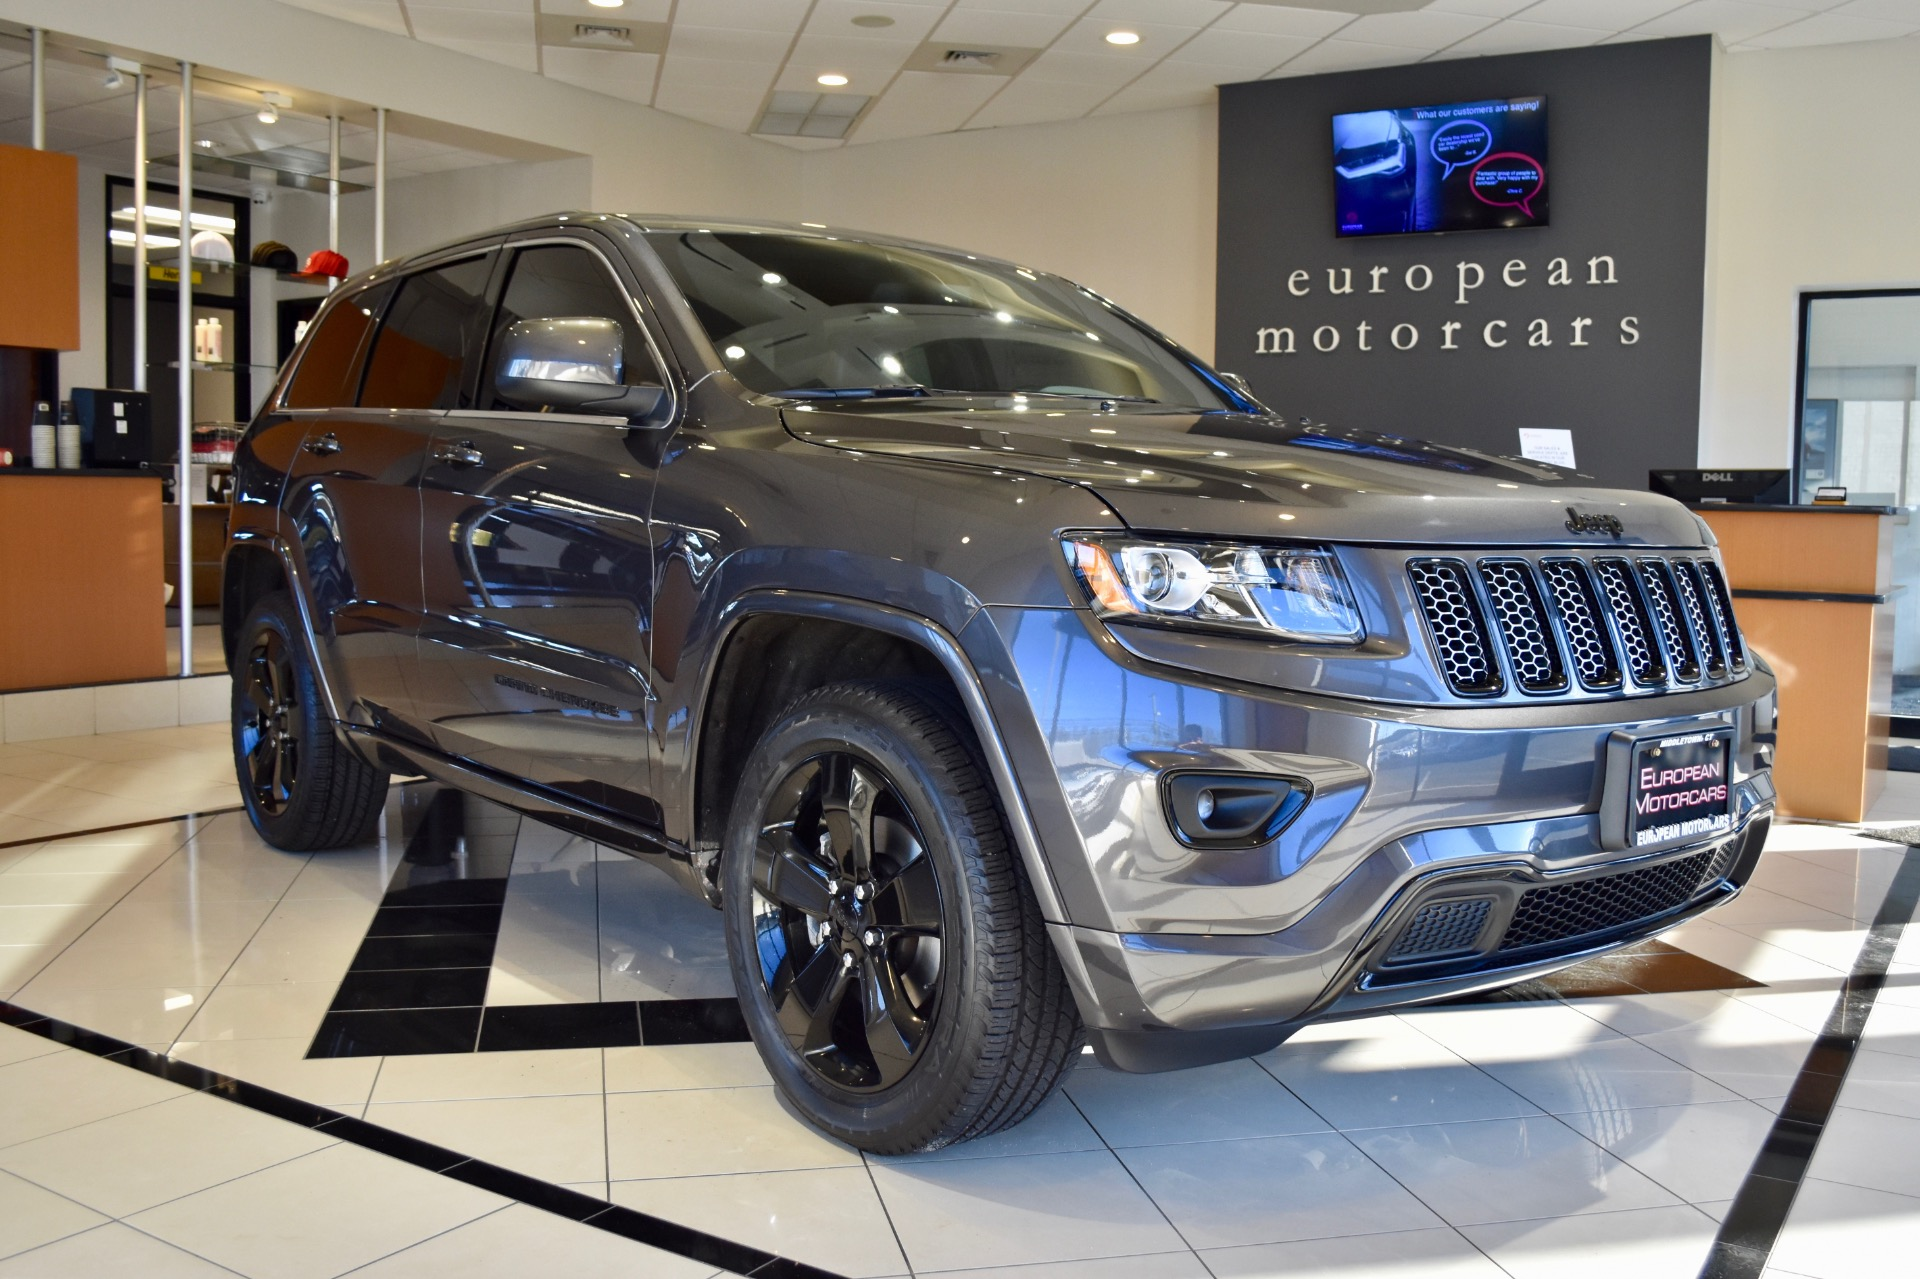 2015 Jeep Grand Cherokee Altitude for sale near Middletown CT